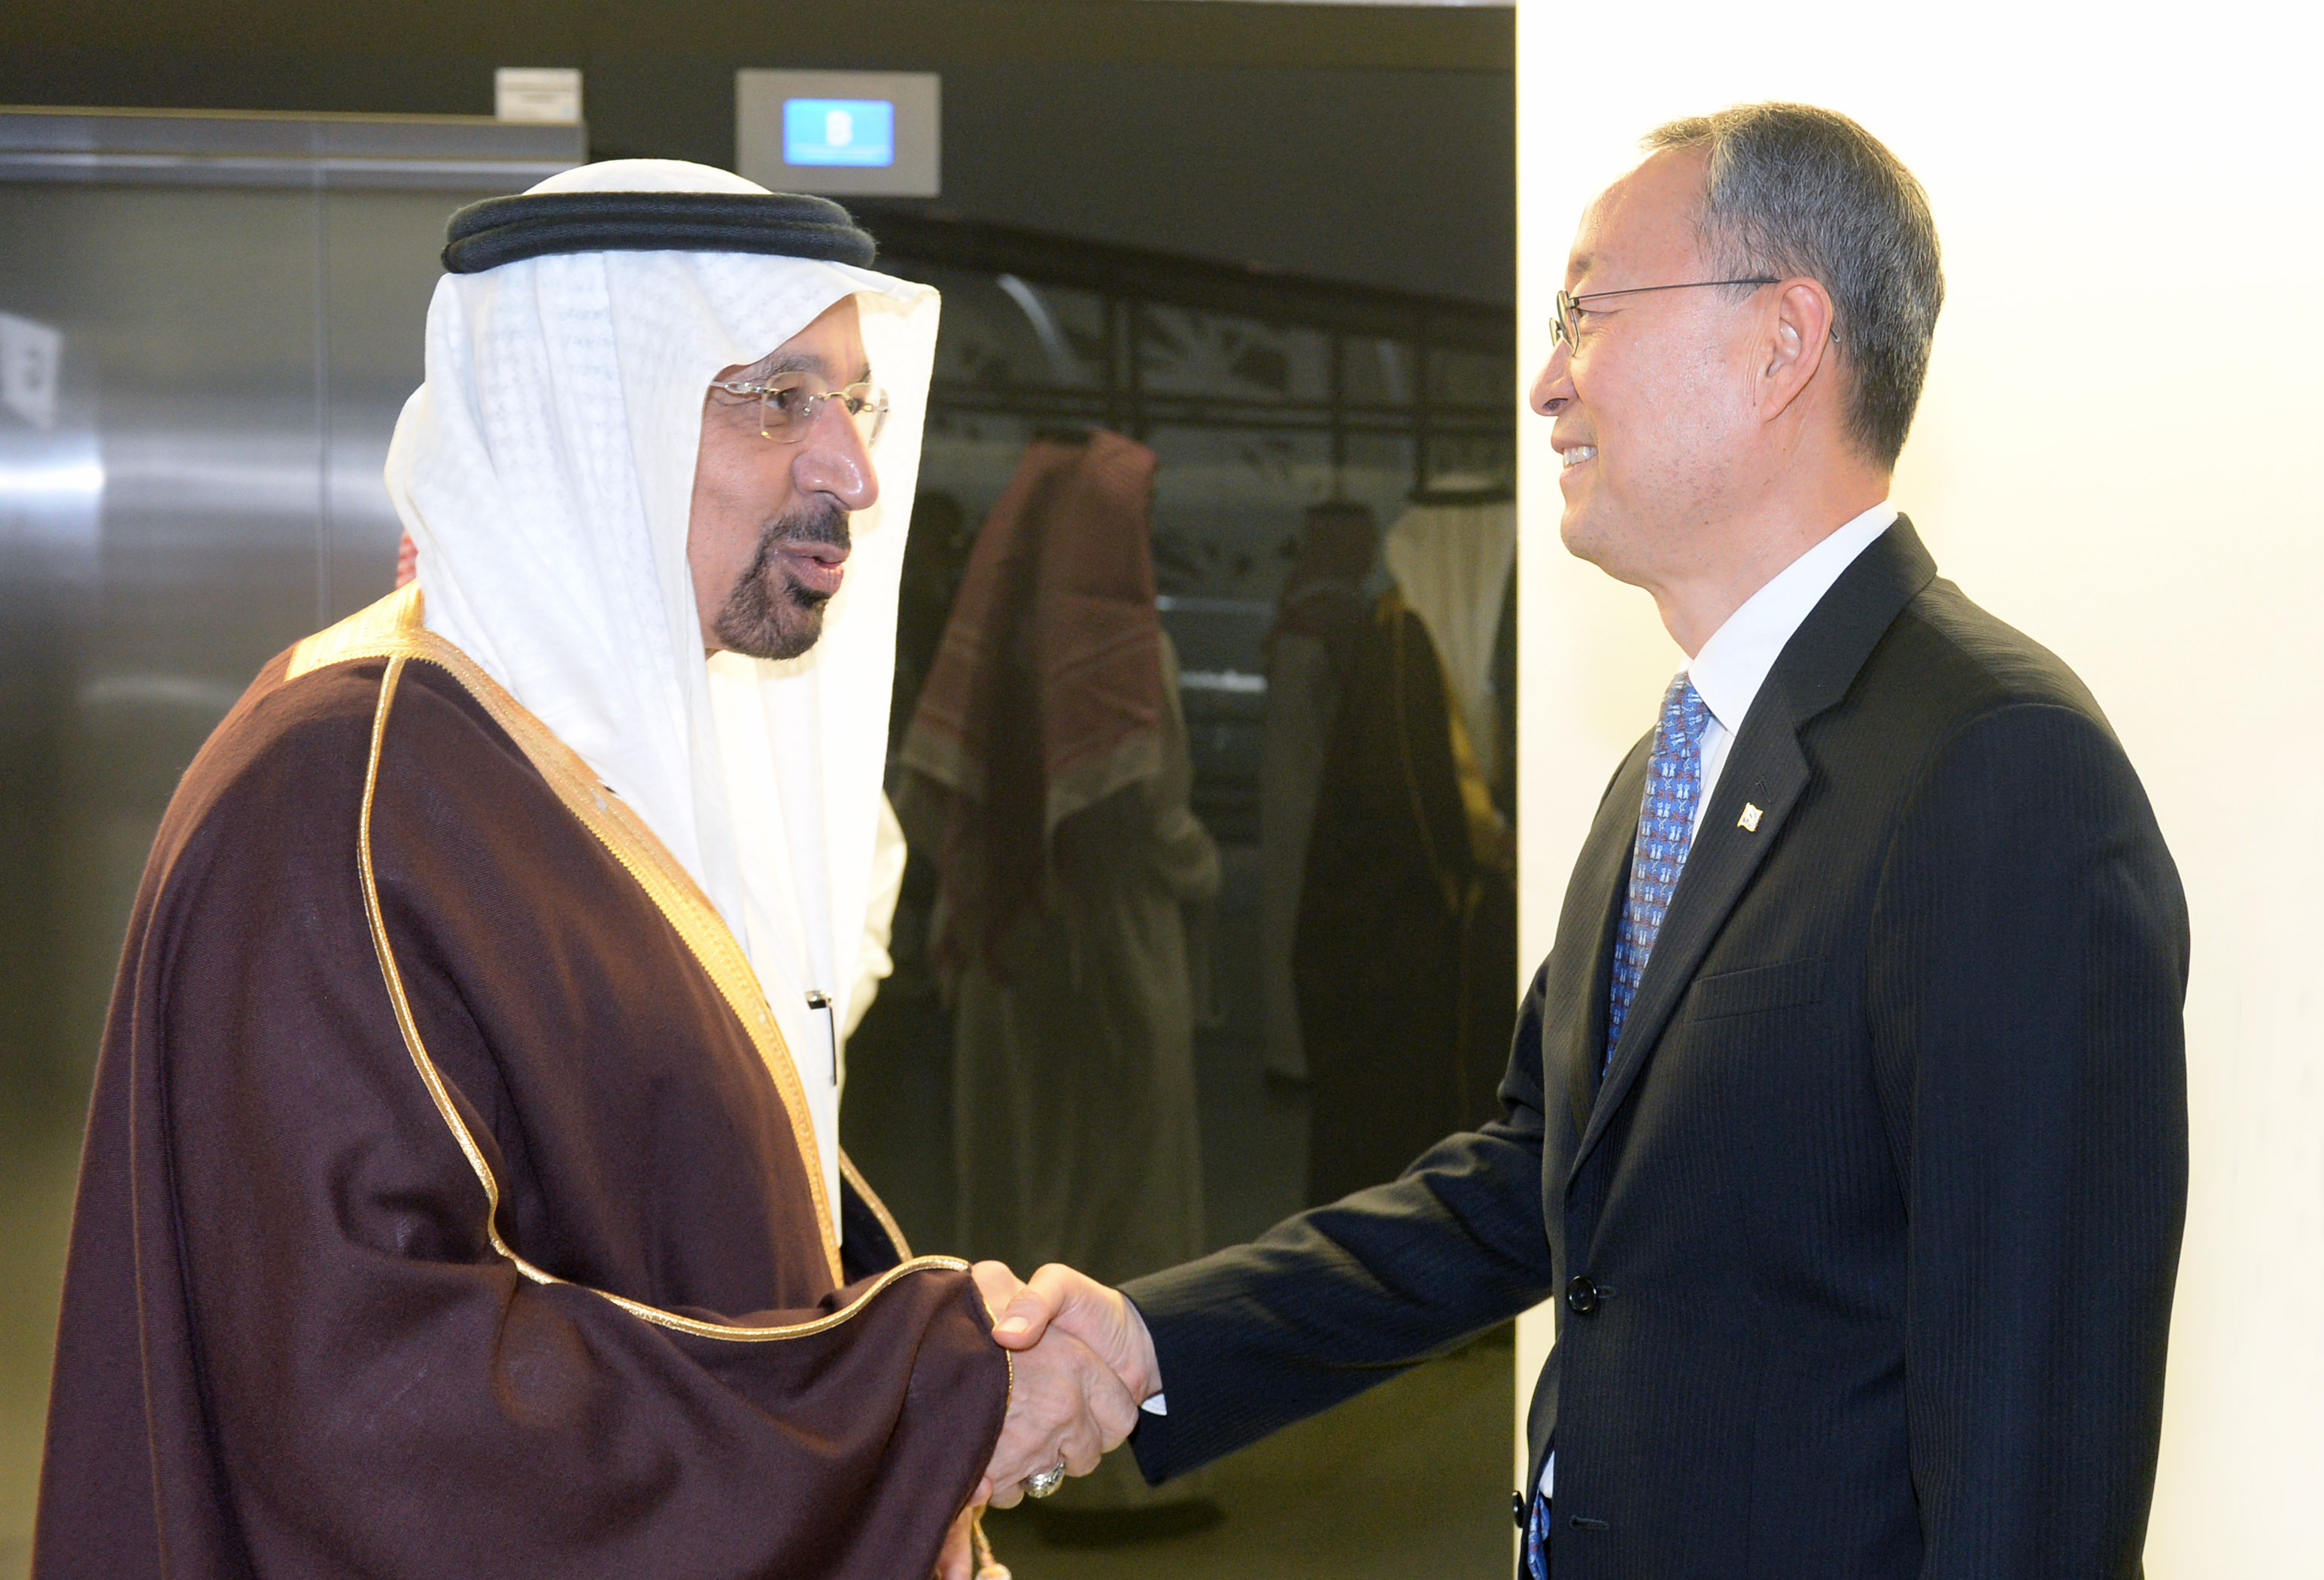 Minister Paik shakes hands with Saudi Arabia's counterpart